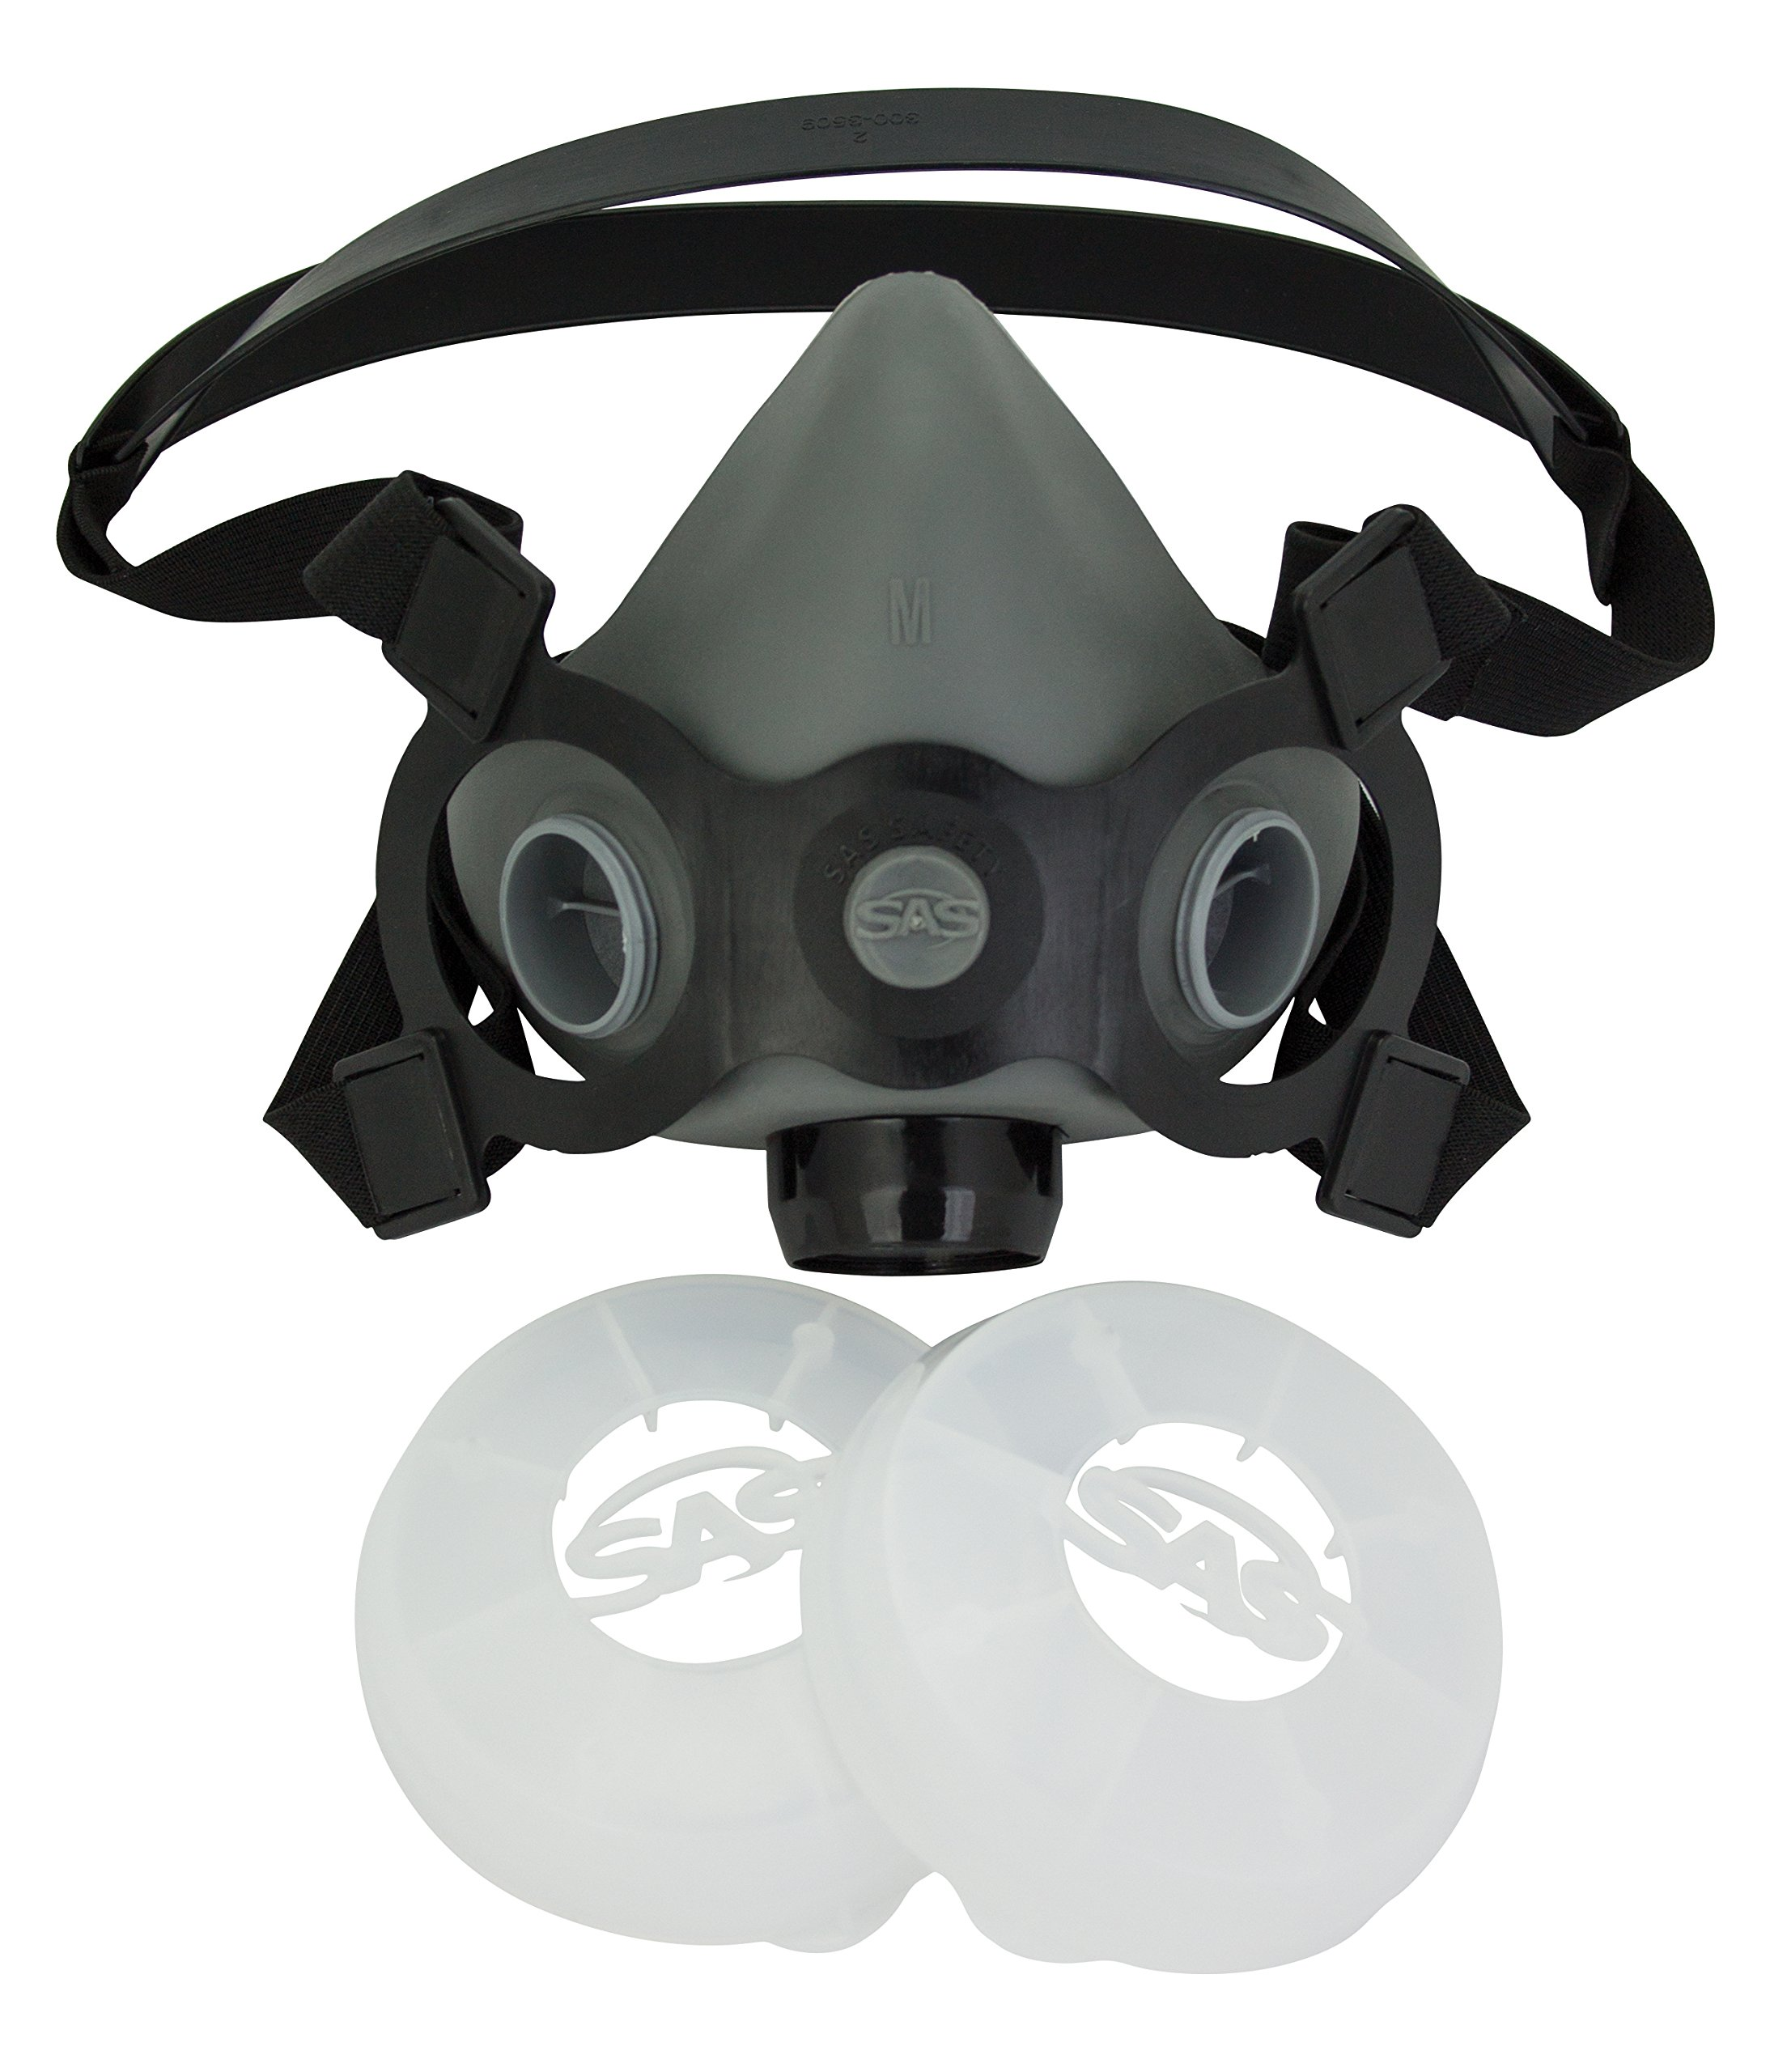 SAS Safety Corp. 311-2017 SAS Safety BreatheMate Half Mask APR Respirator with Filter Retainer, Medium